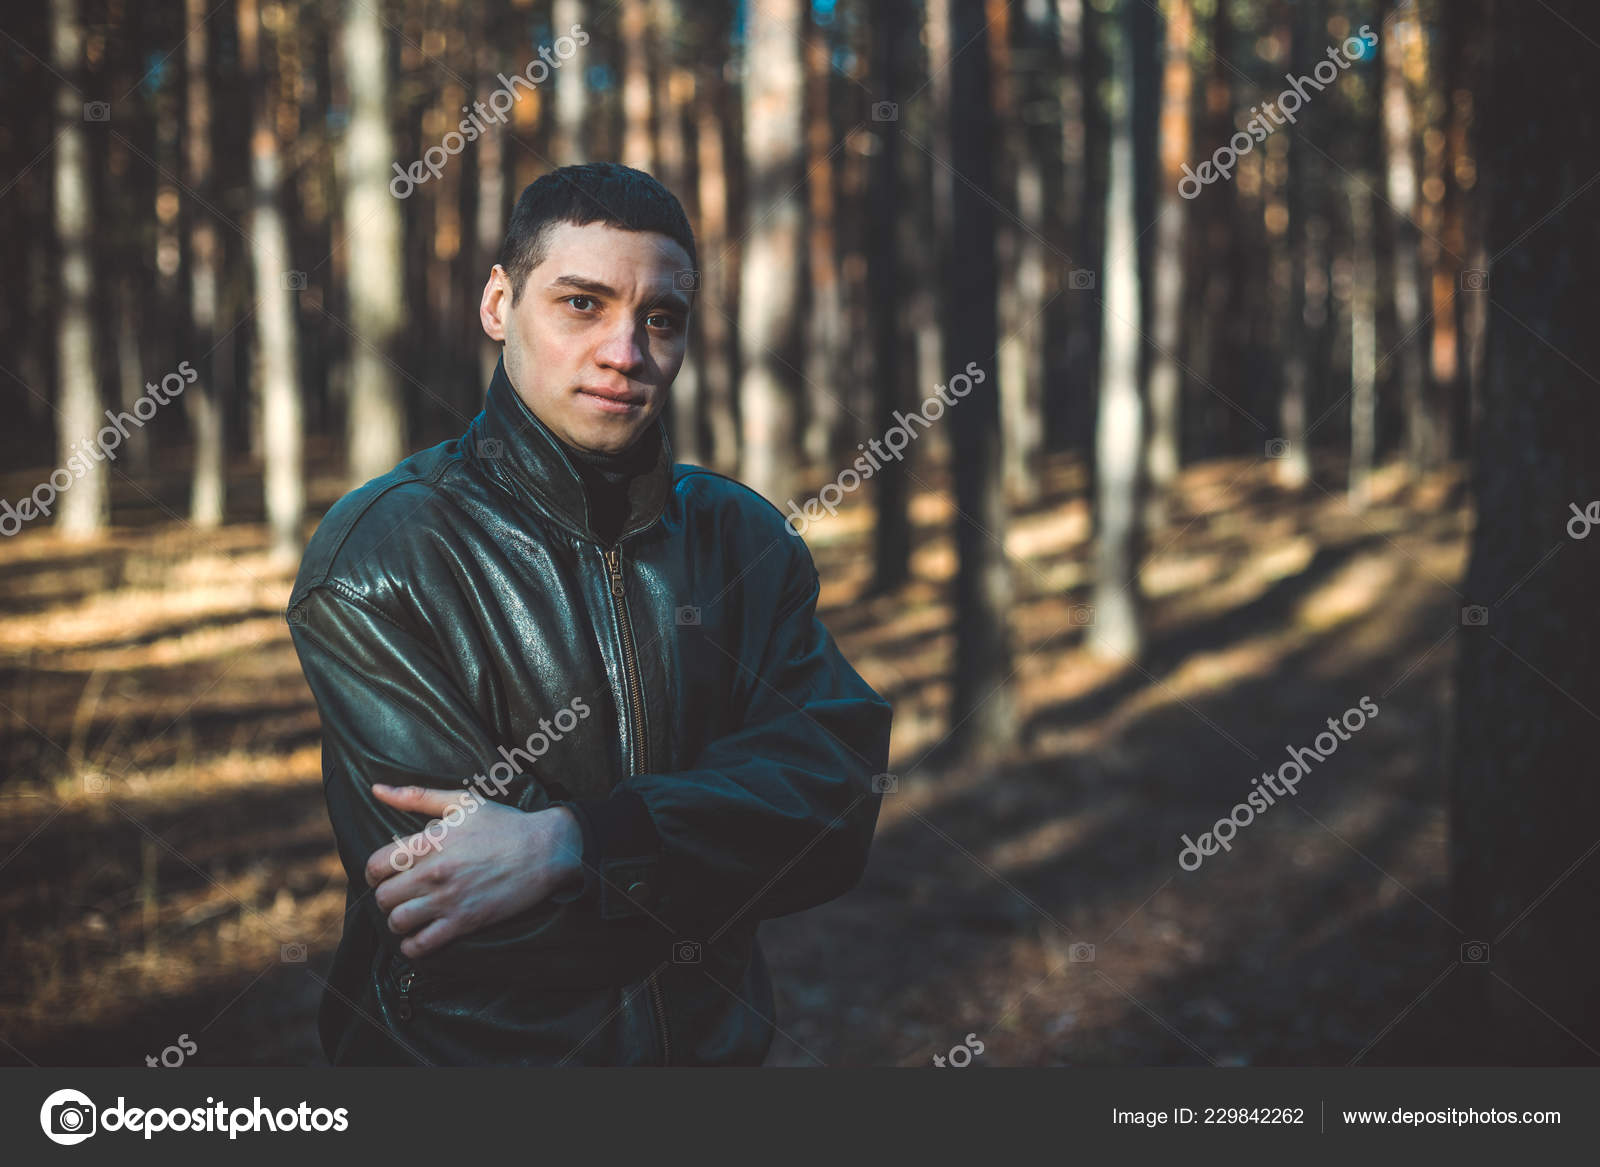 Young Man Criminal Appearance Black Leather Jacket Posing